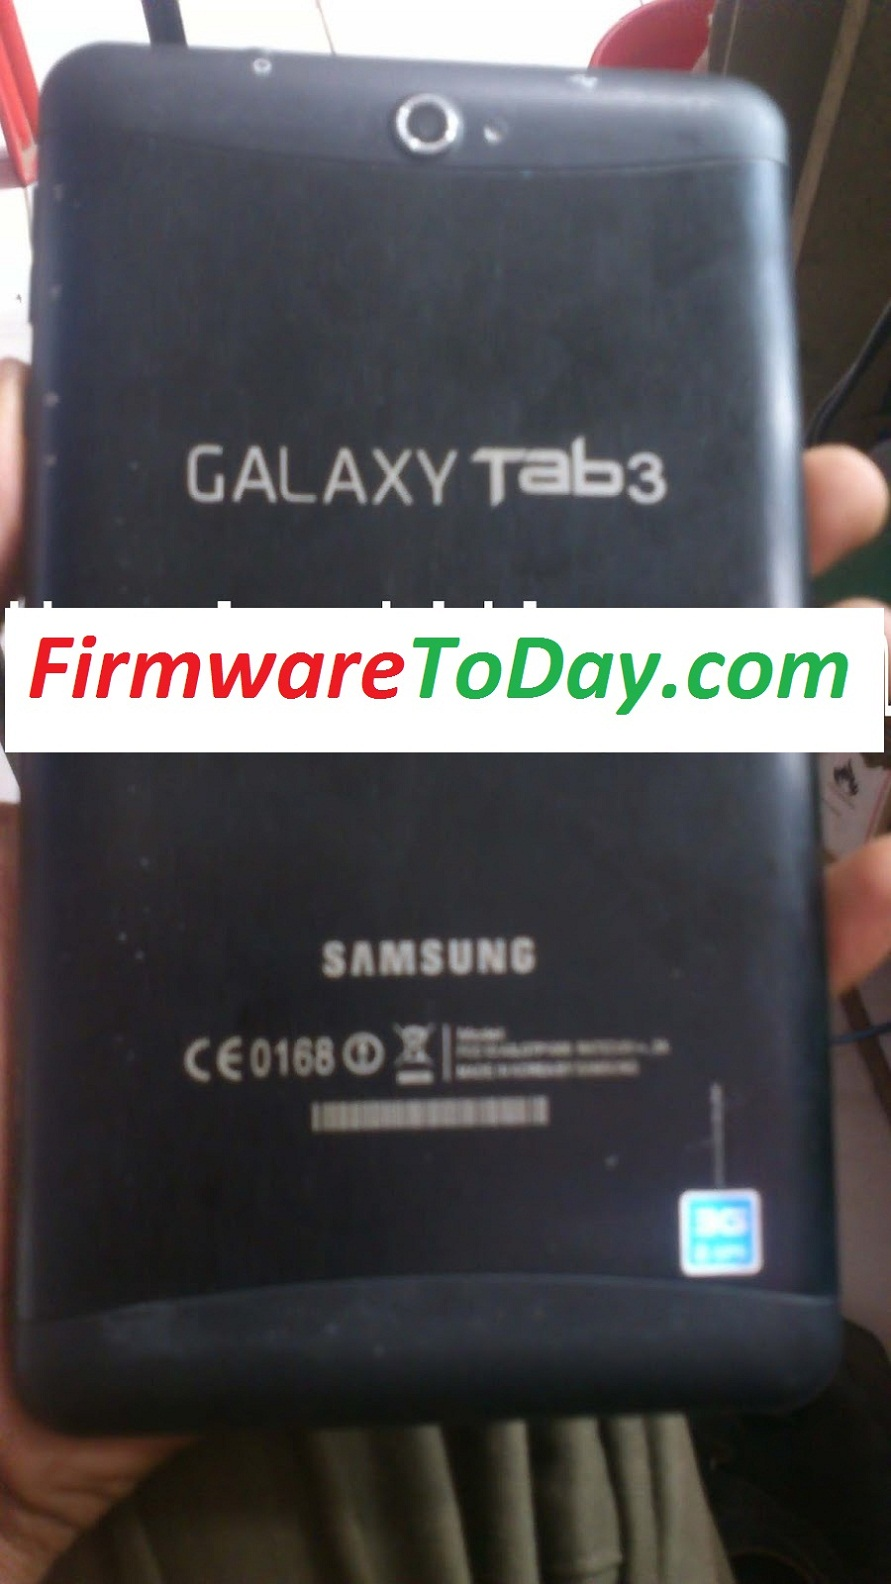 Samsung Galaxy Tab 3 Official firmware Free New 4.1.2 (Board ID=Q709A MB V1.2)2000%tested By FirmwareToday.com